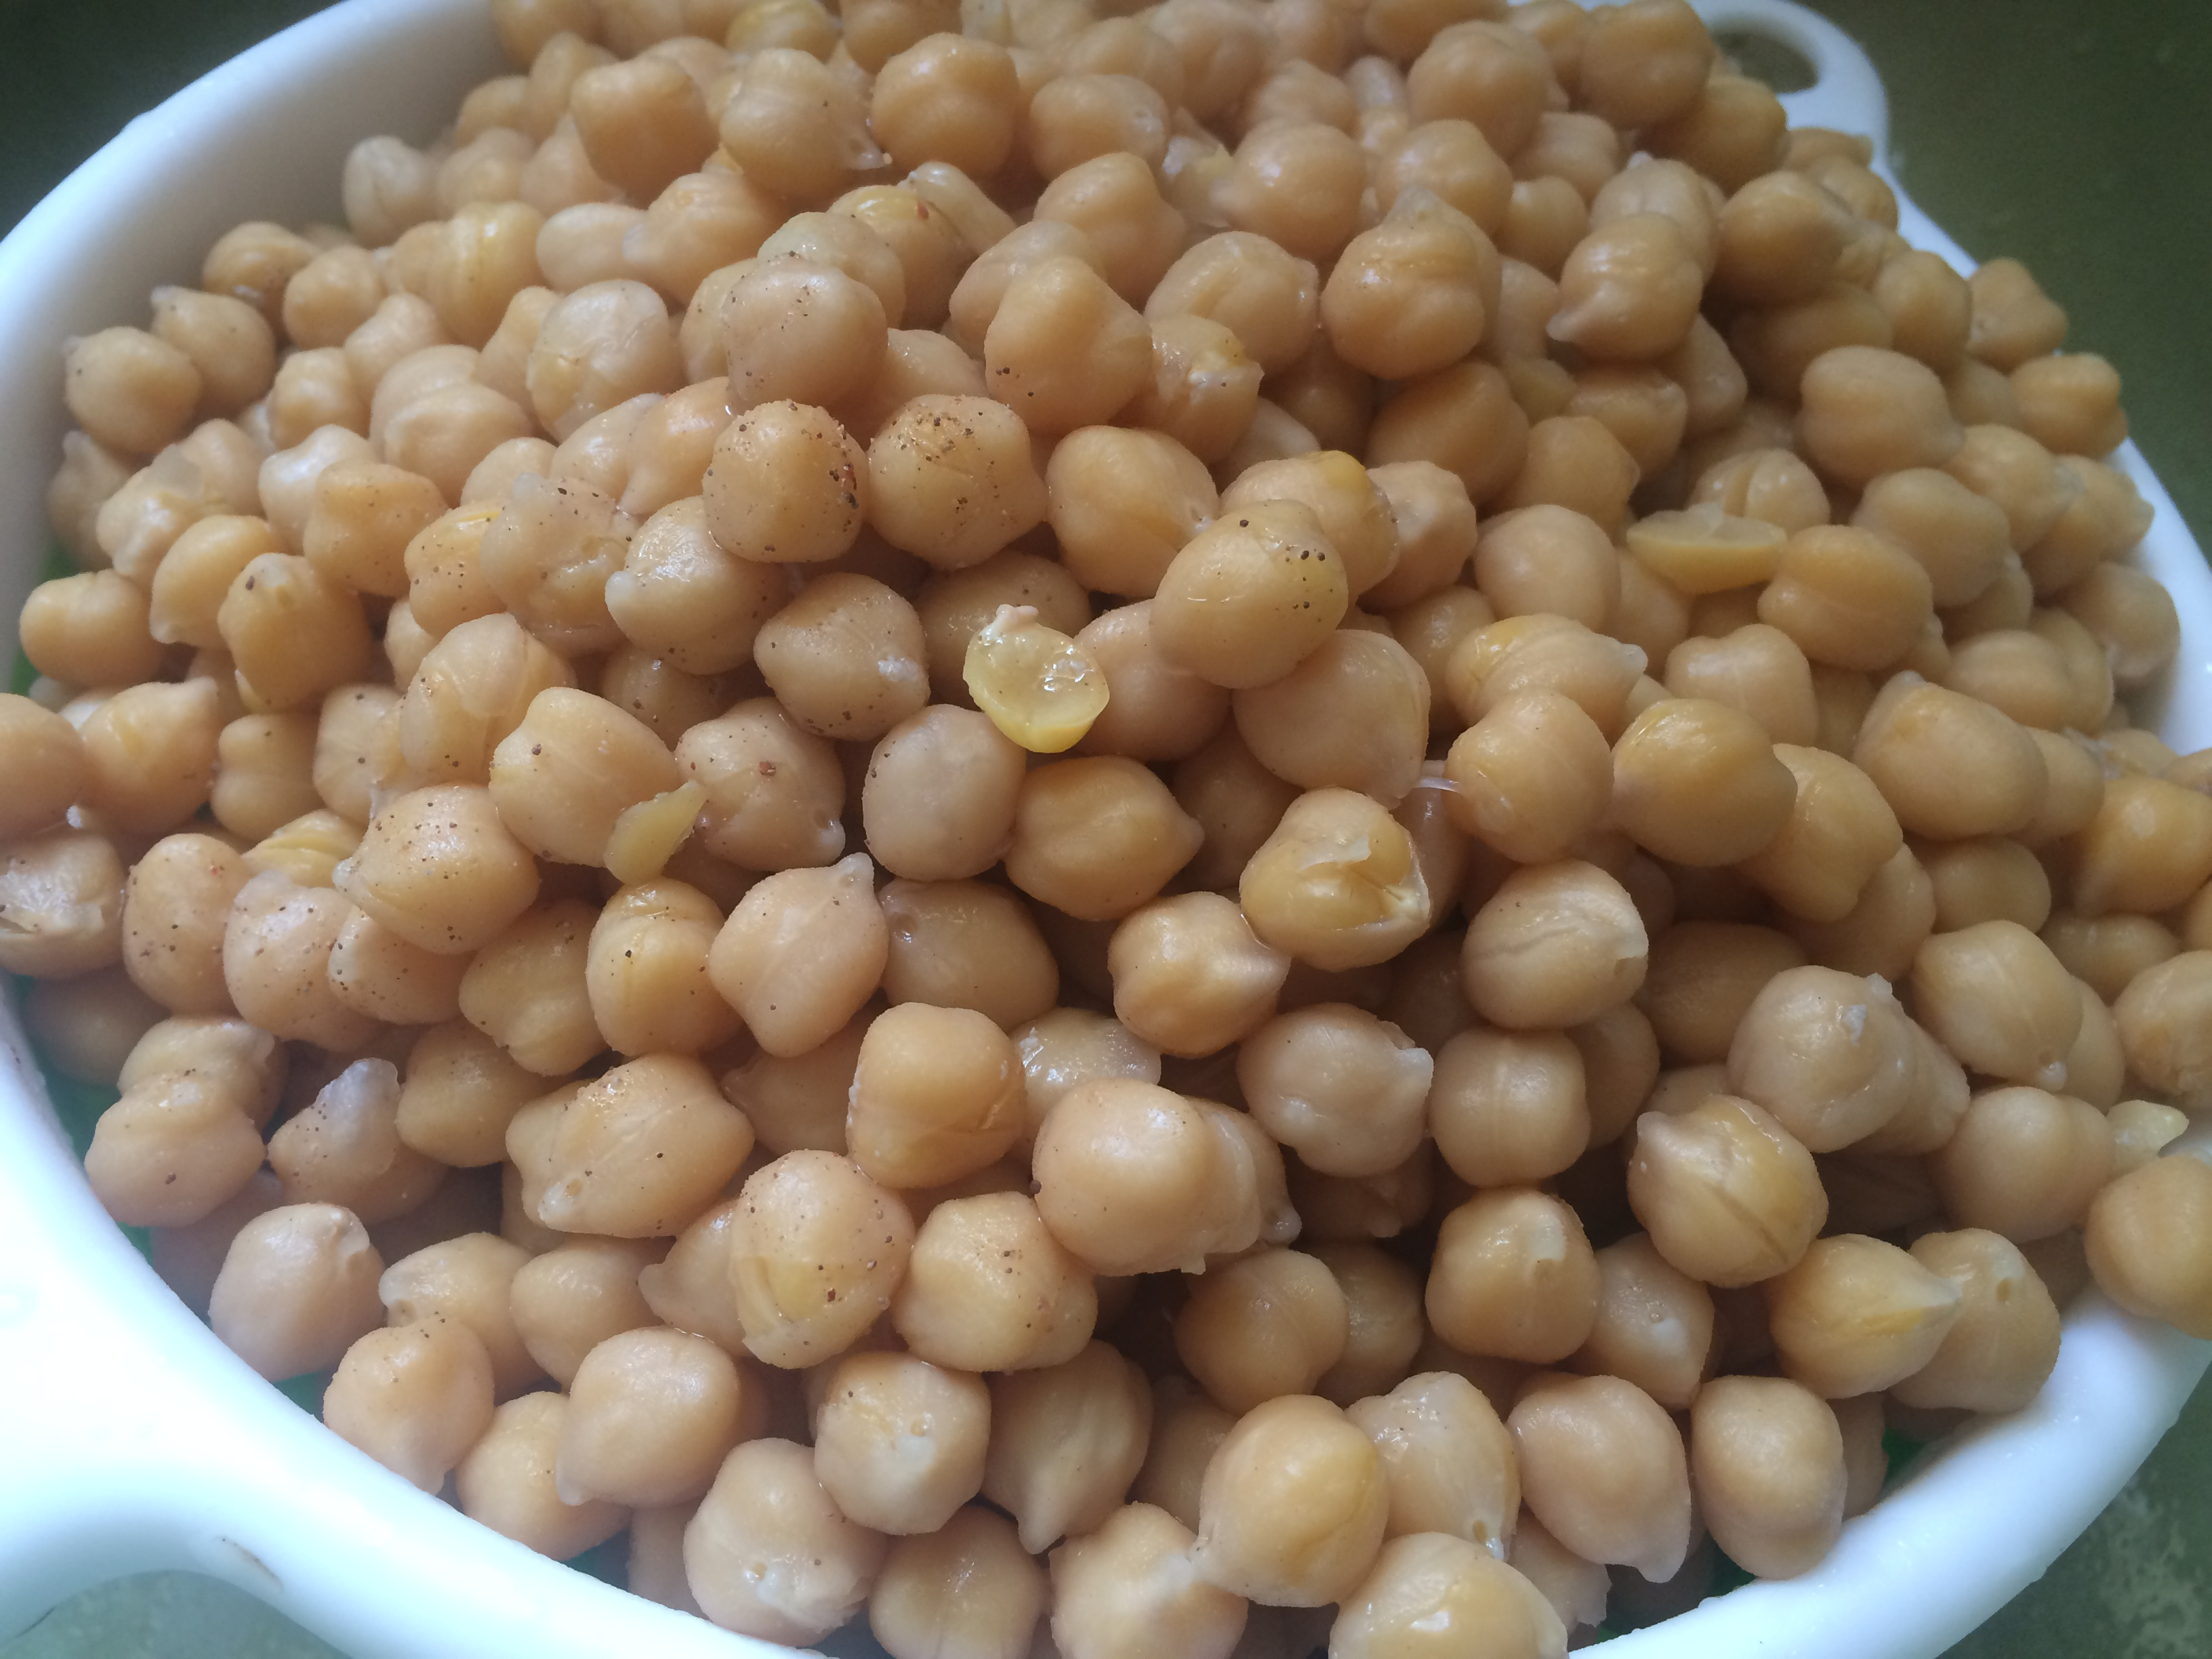 cooked garbanzo beans